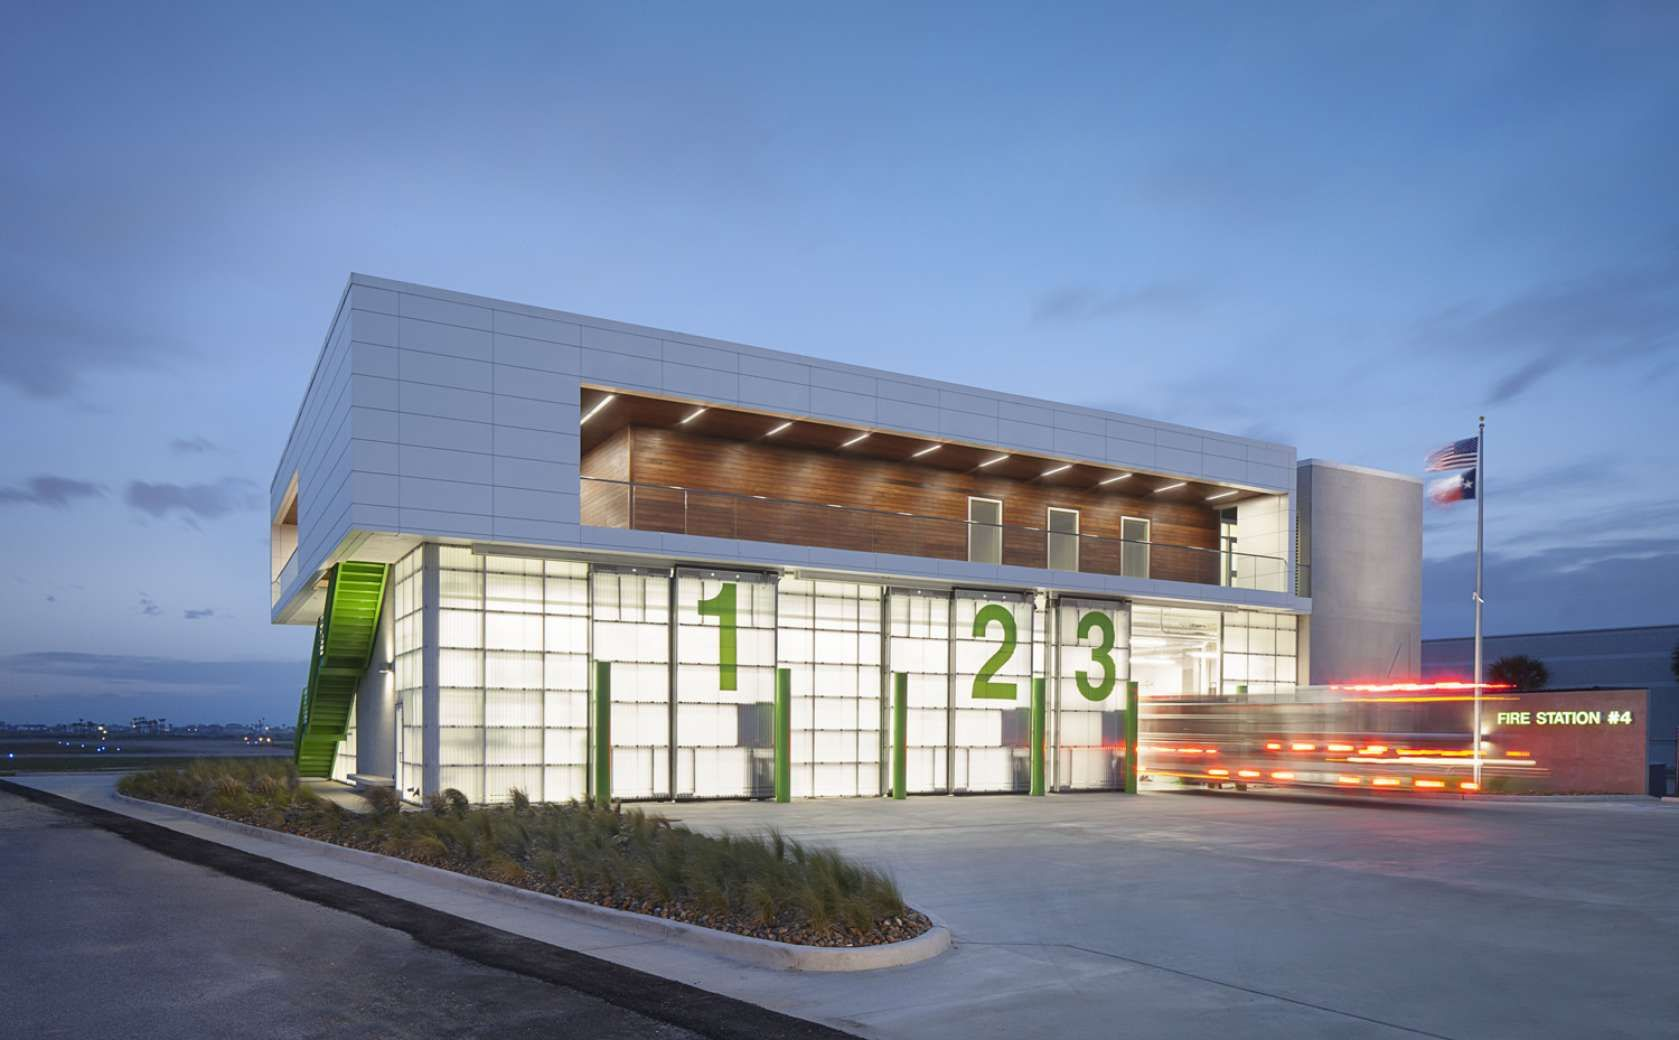 Fire Station Designed By James Henry, AIA, 2015 Young Architects Award  Recipient. HDR, Inc.